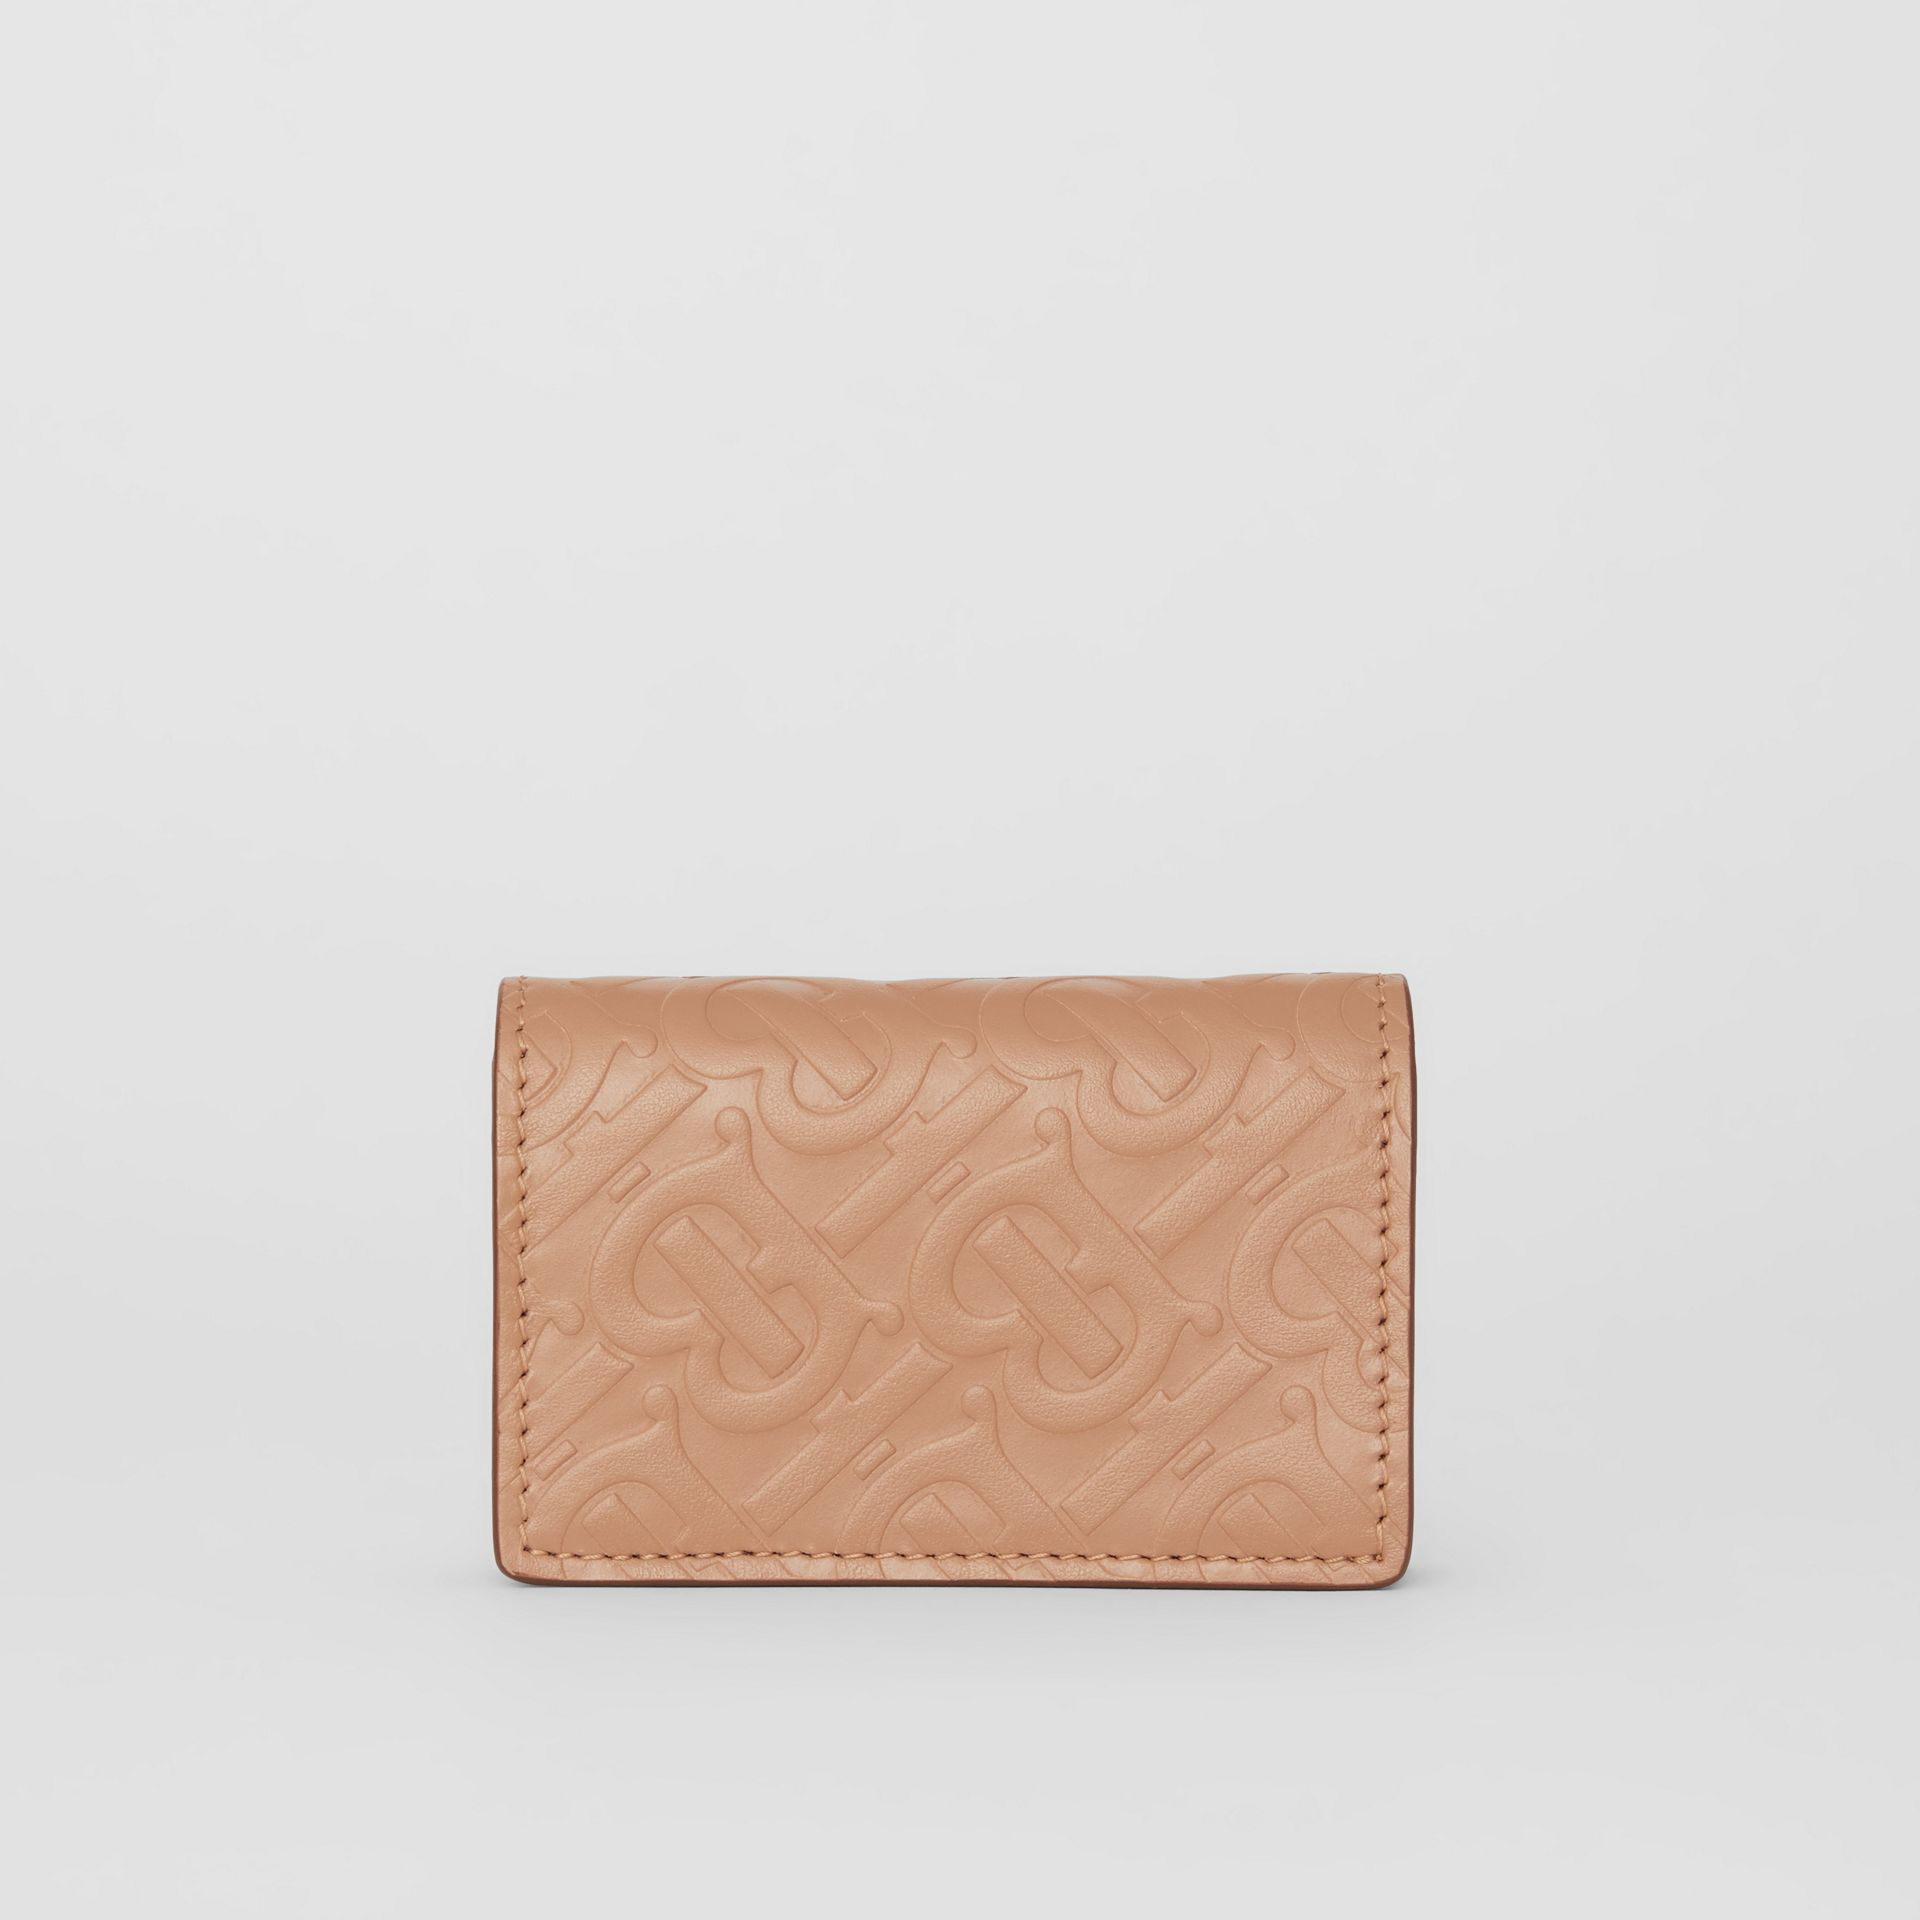 Monogram Leather Card Case in Light Camel - Women | Burberry - gallery image 4